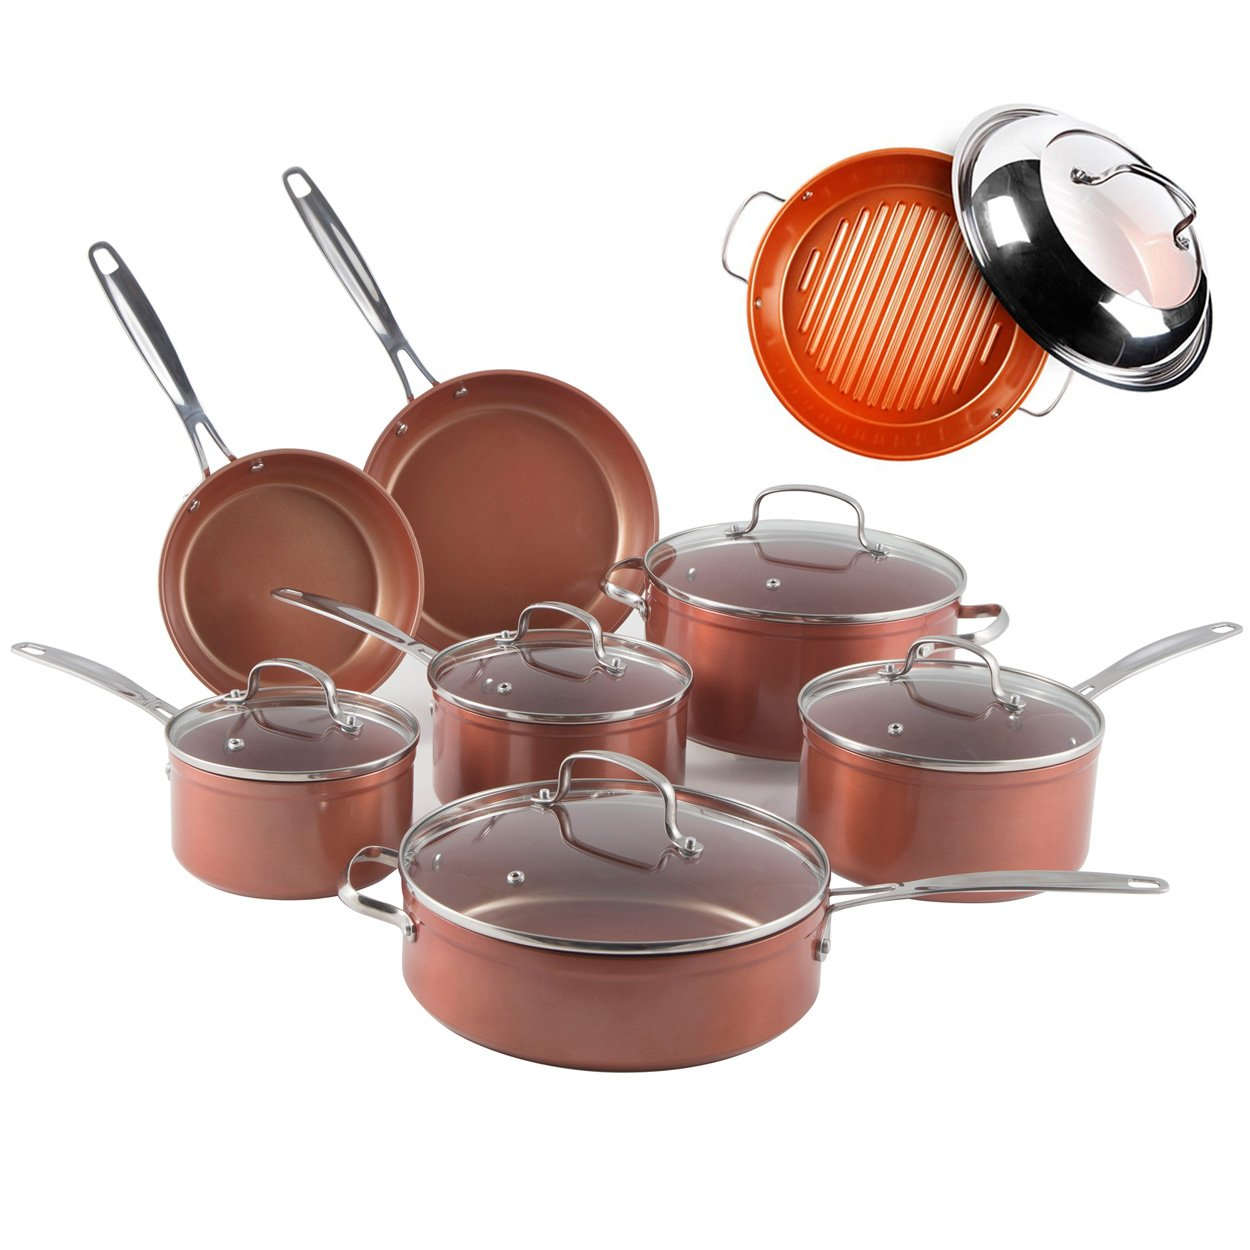 NuWave Duralon Ceramic Nonstick 12-Piece Cookware Set (Cookware w/ Grill Pan) by NuWave